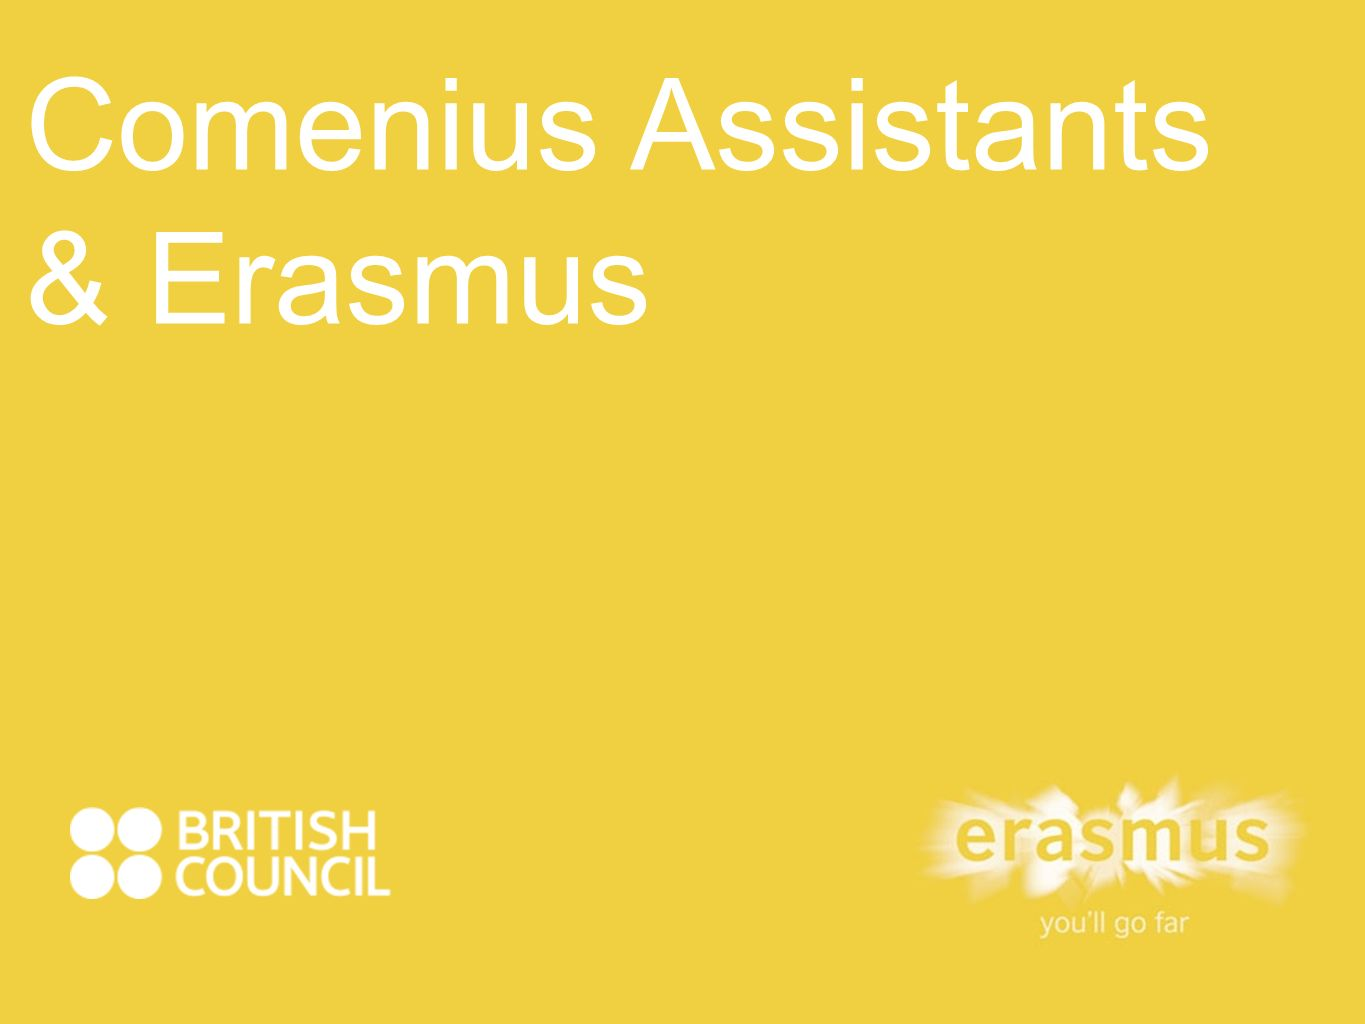 Comenius Assistants & Erasmus